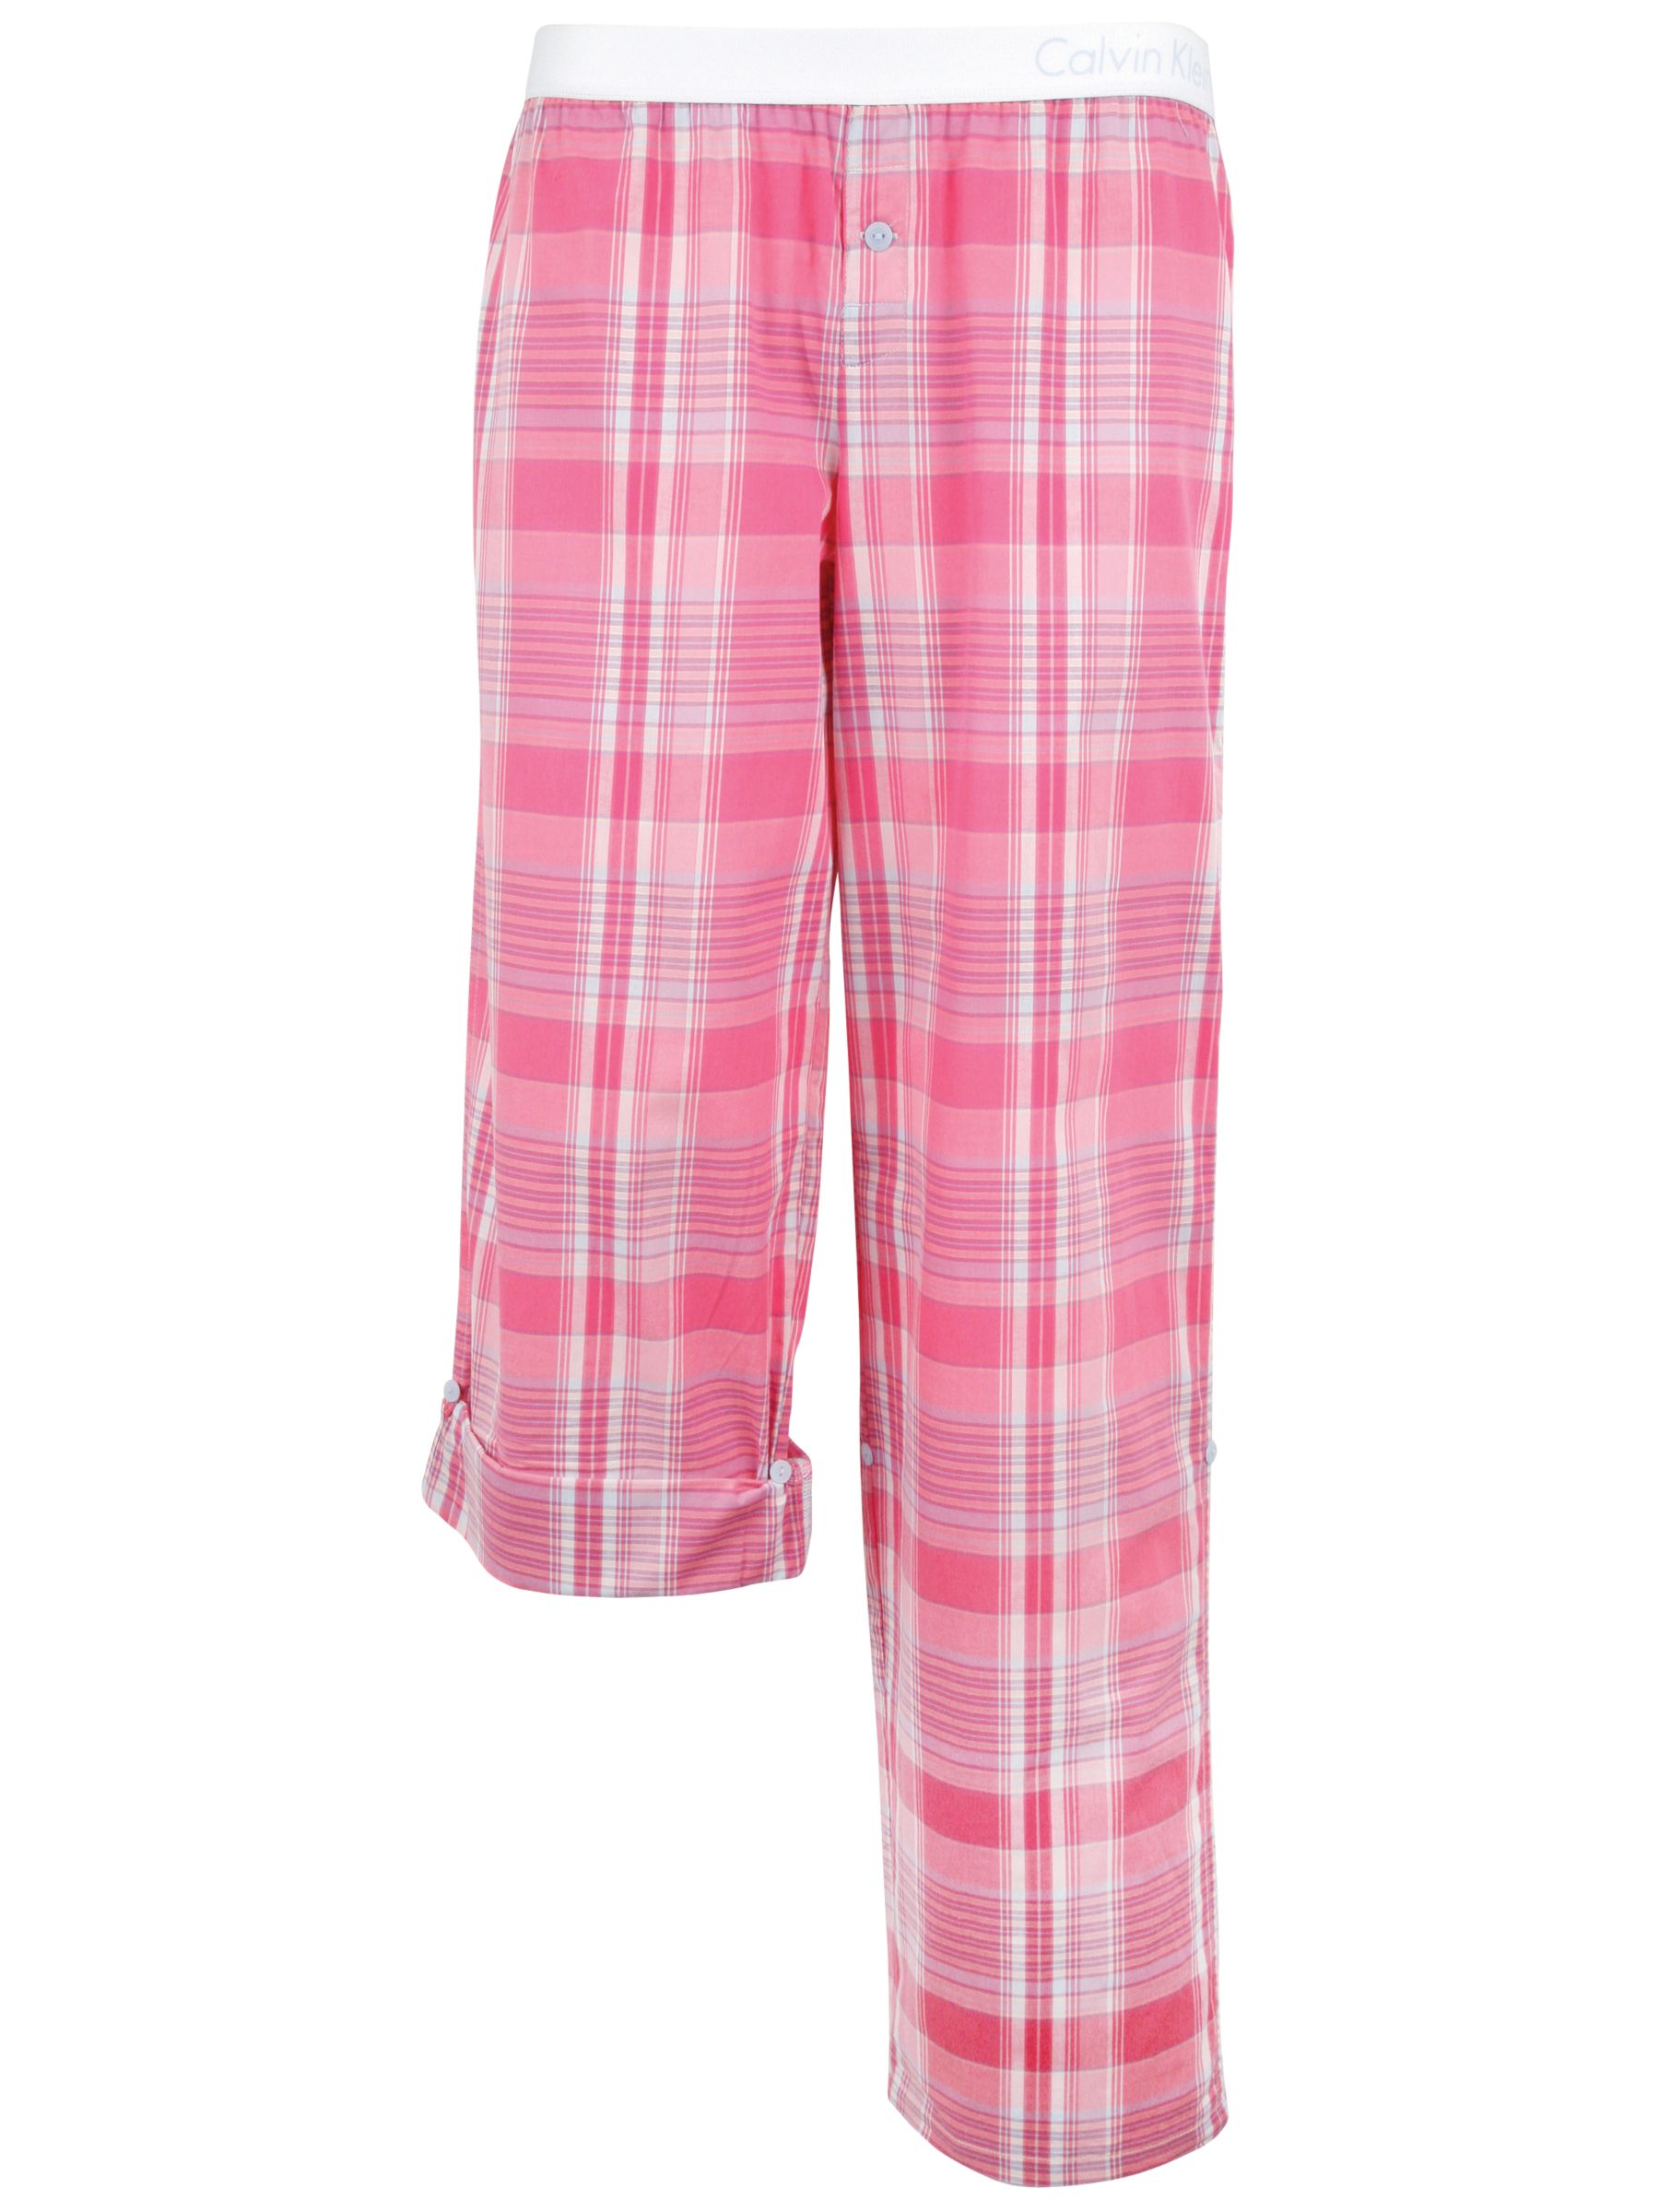 Calvin Klein Woven Roll Up Pyjama Trousers, Pink